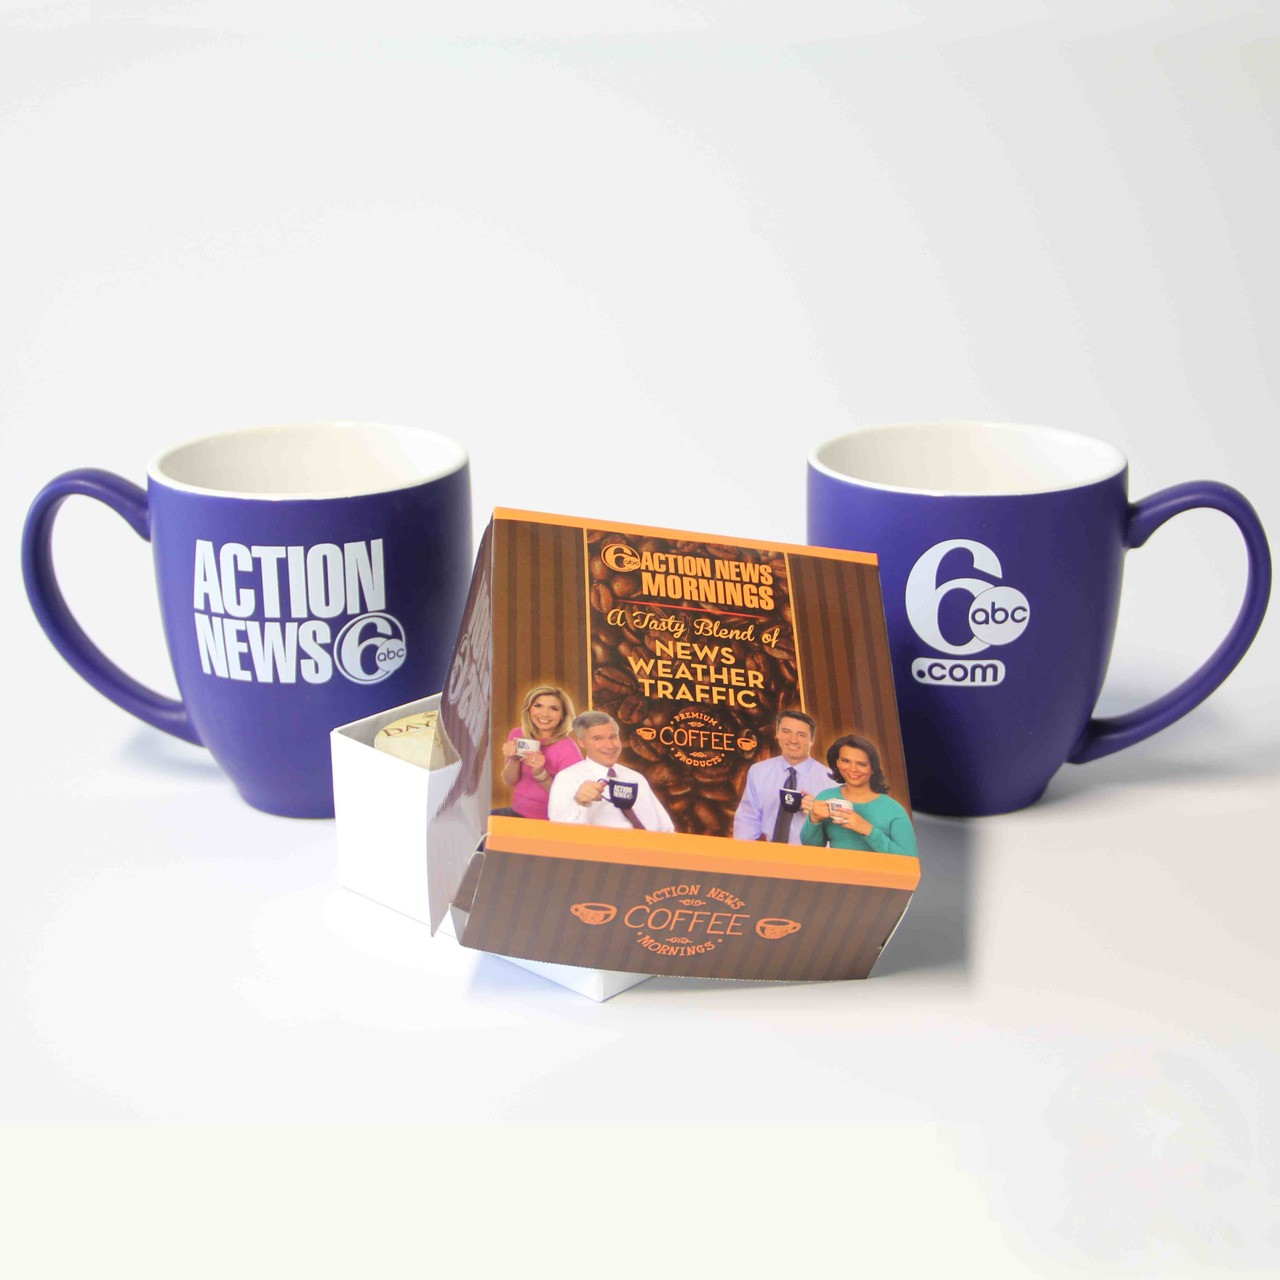 6abc Coffee Combo Pack 2 - 6abc Store